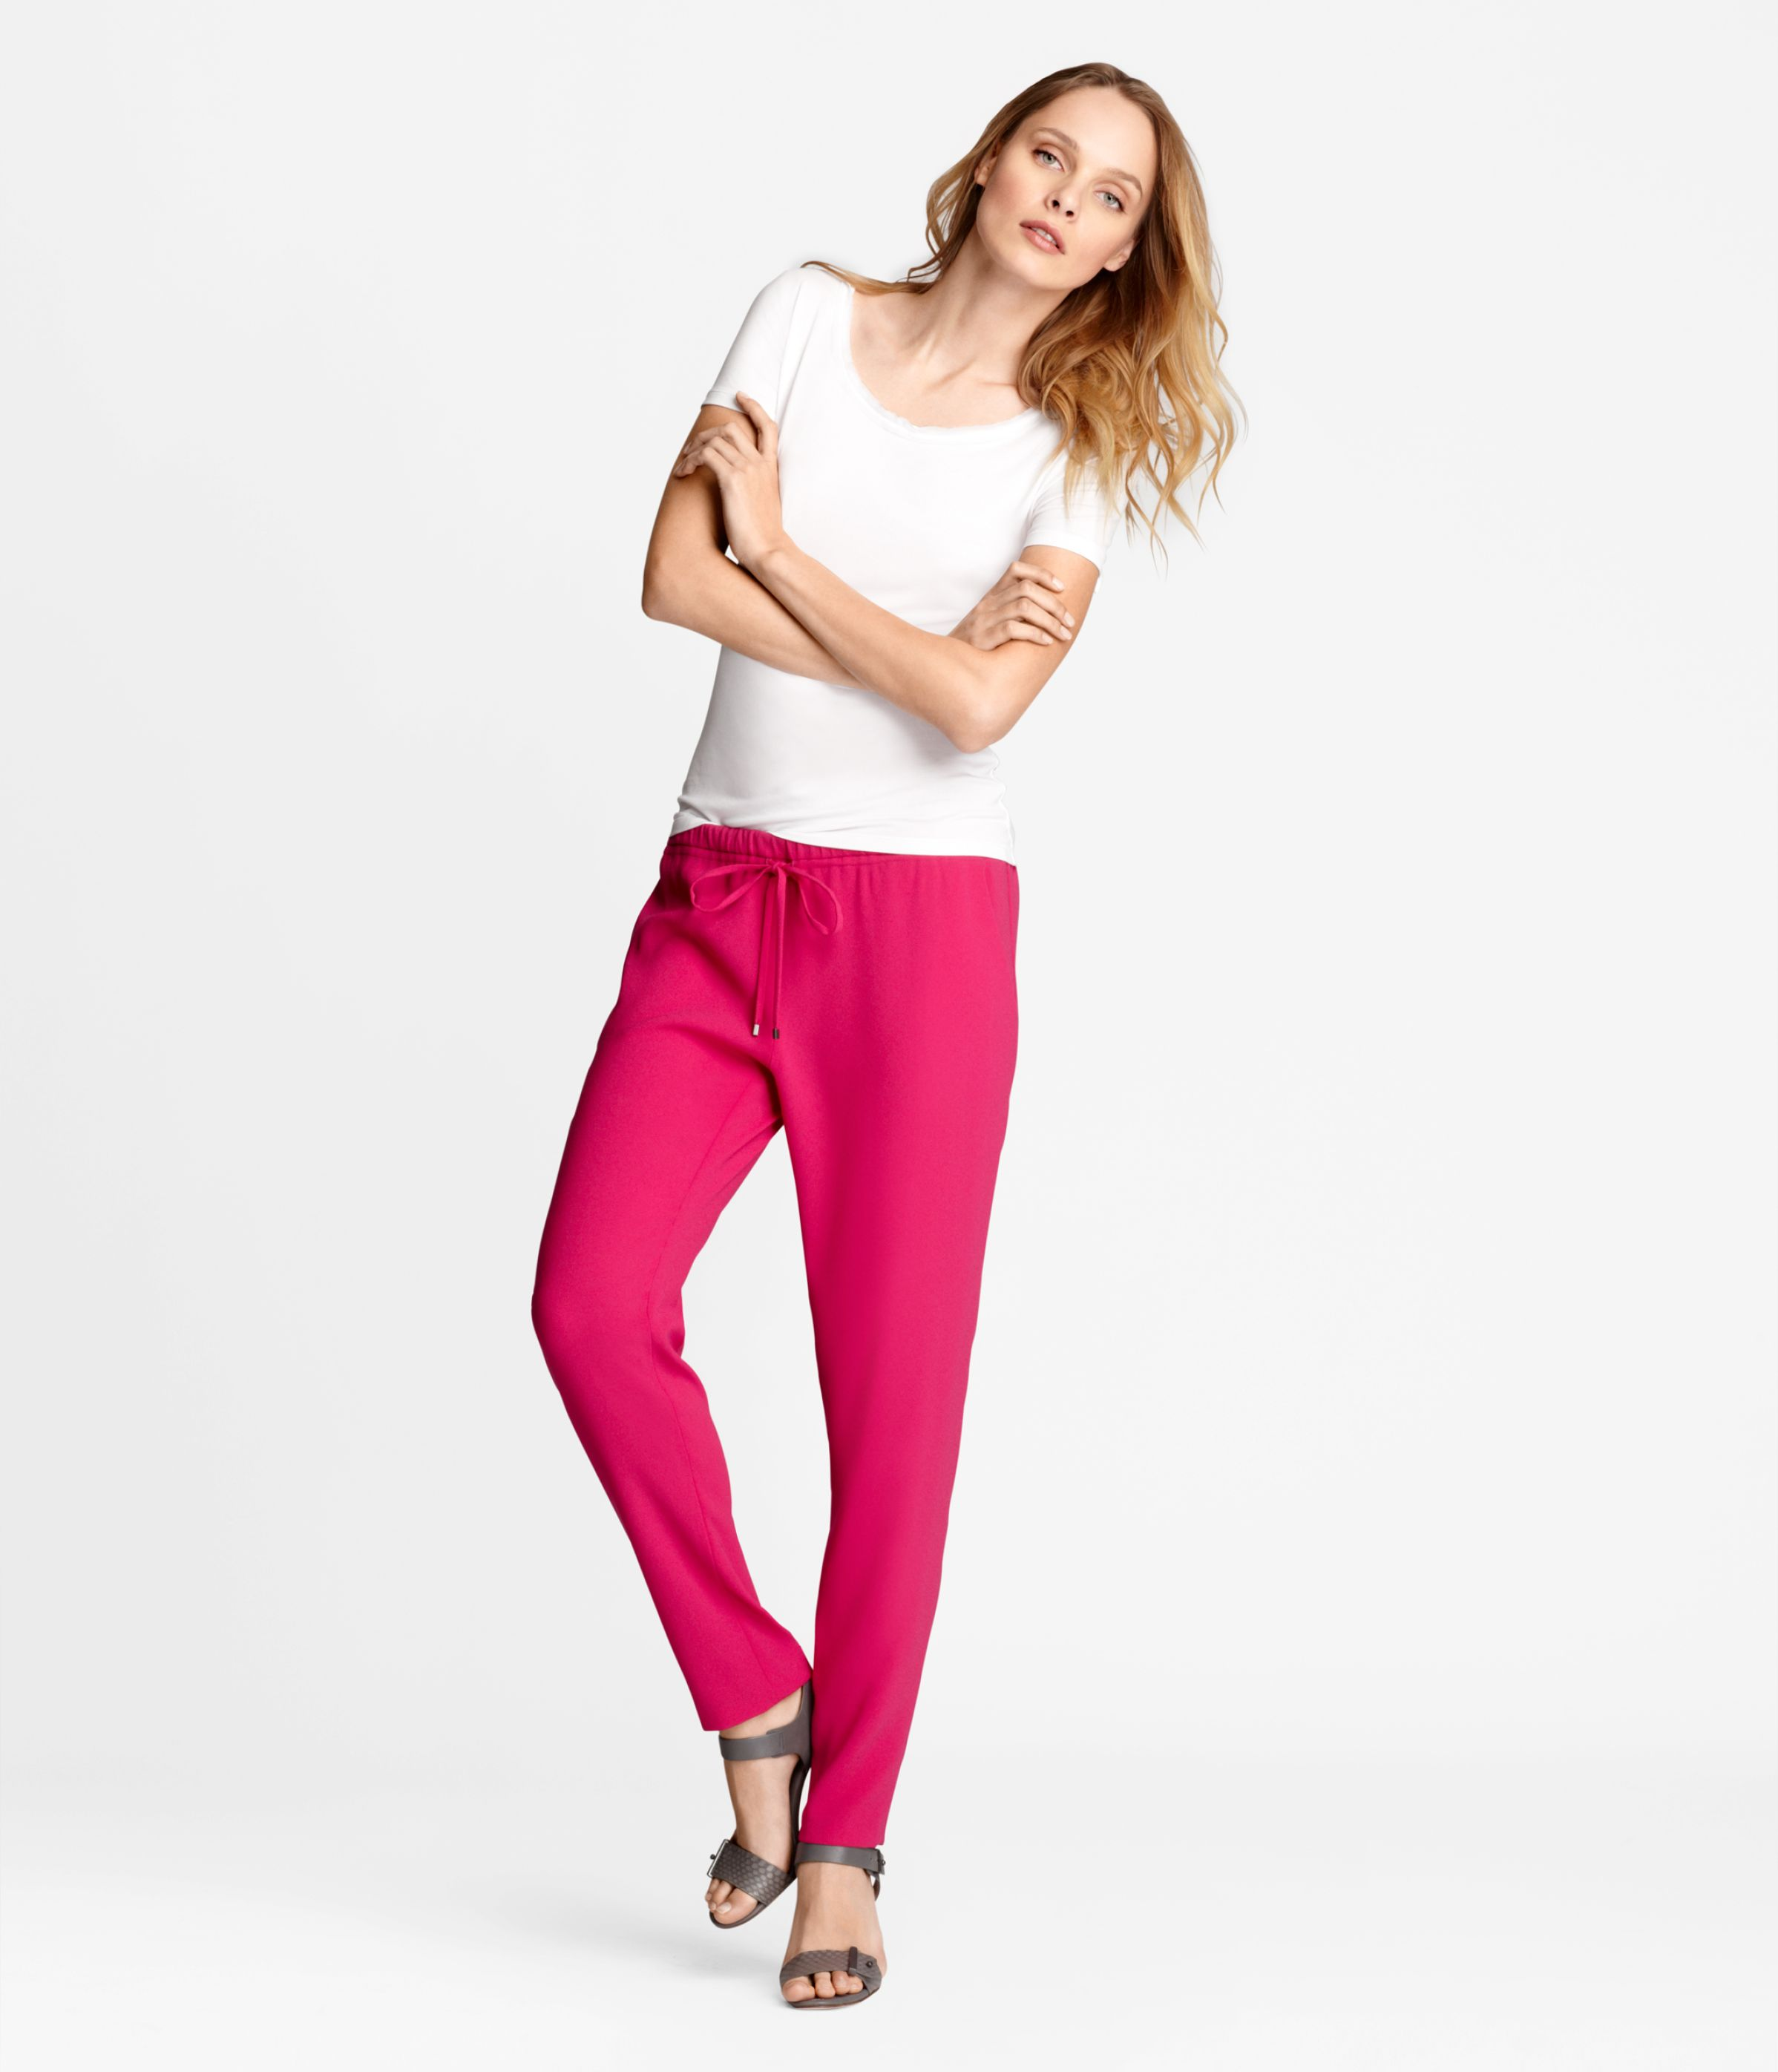 Emmy Pant Motion Magenta | Women's Pants & Shorts | Elie Tahari